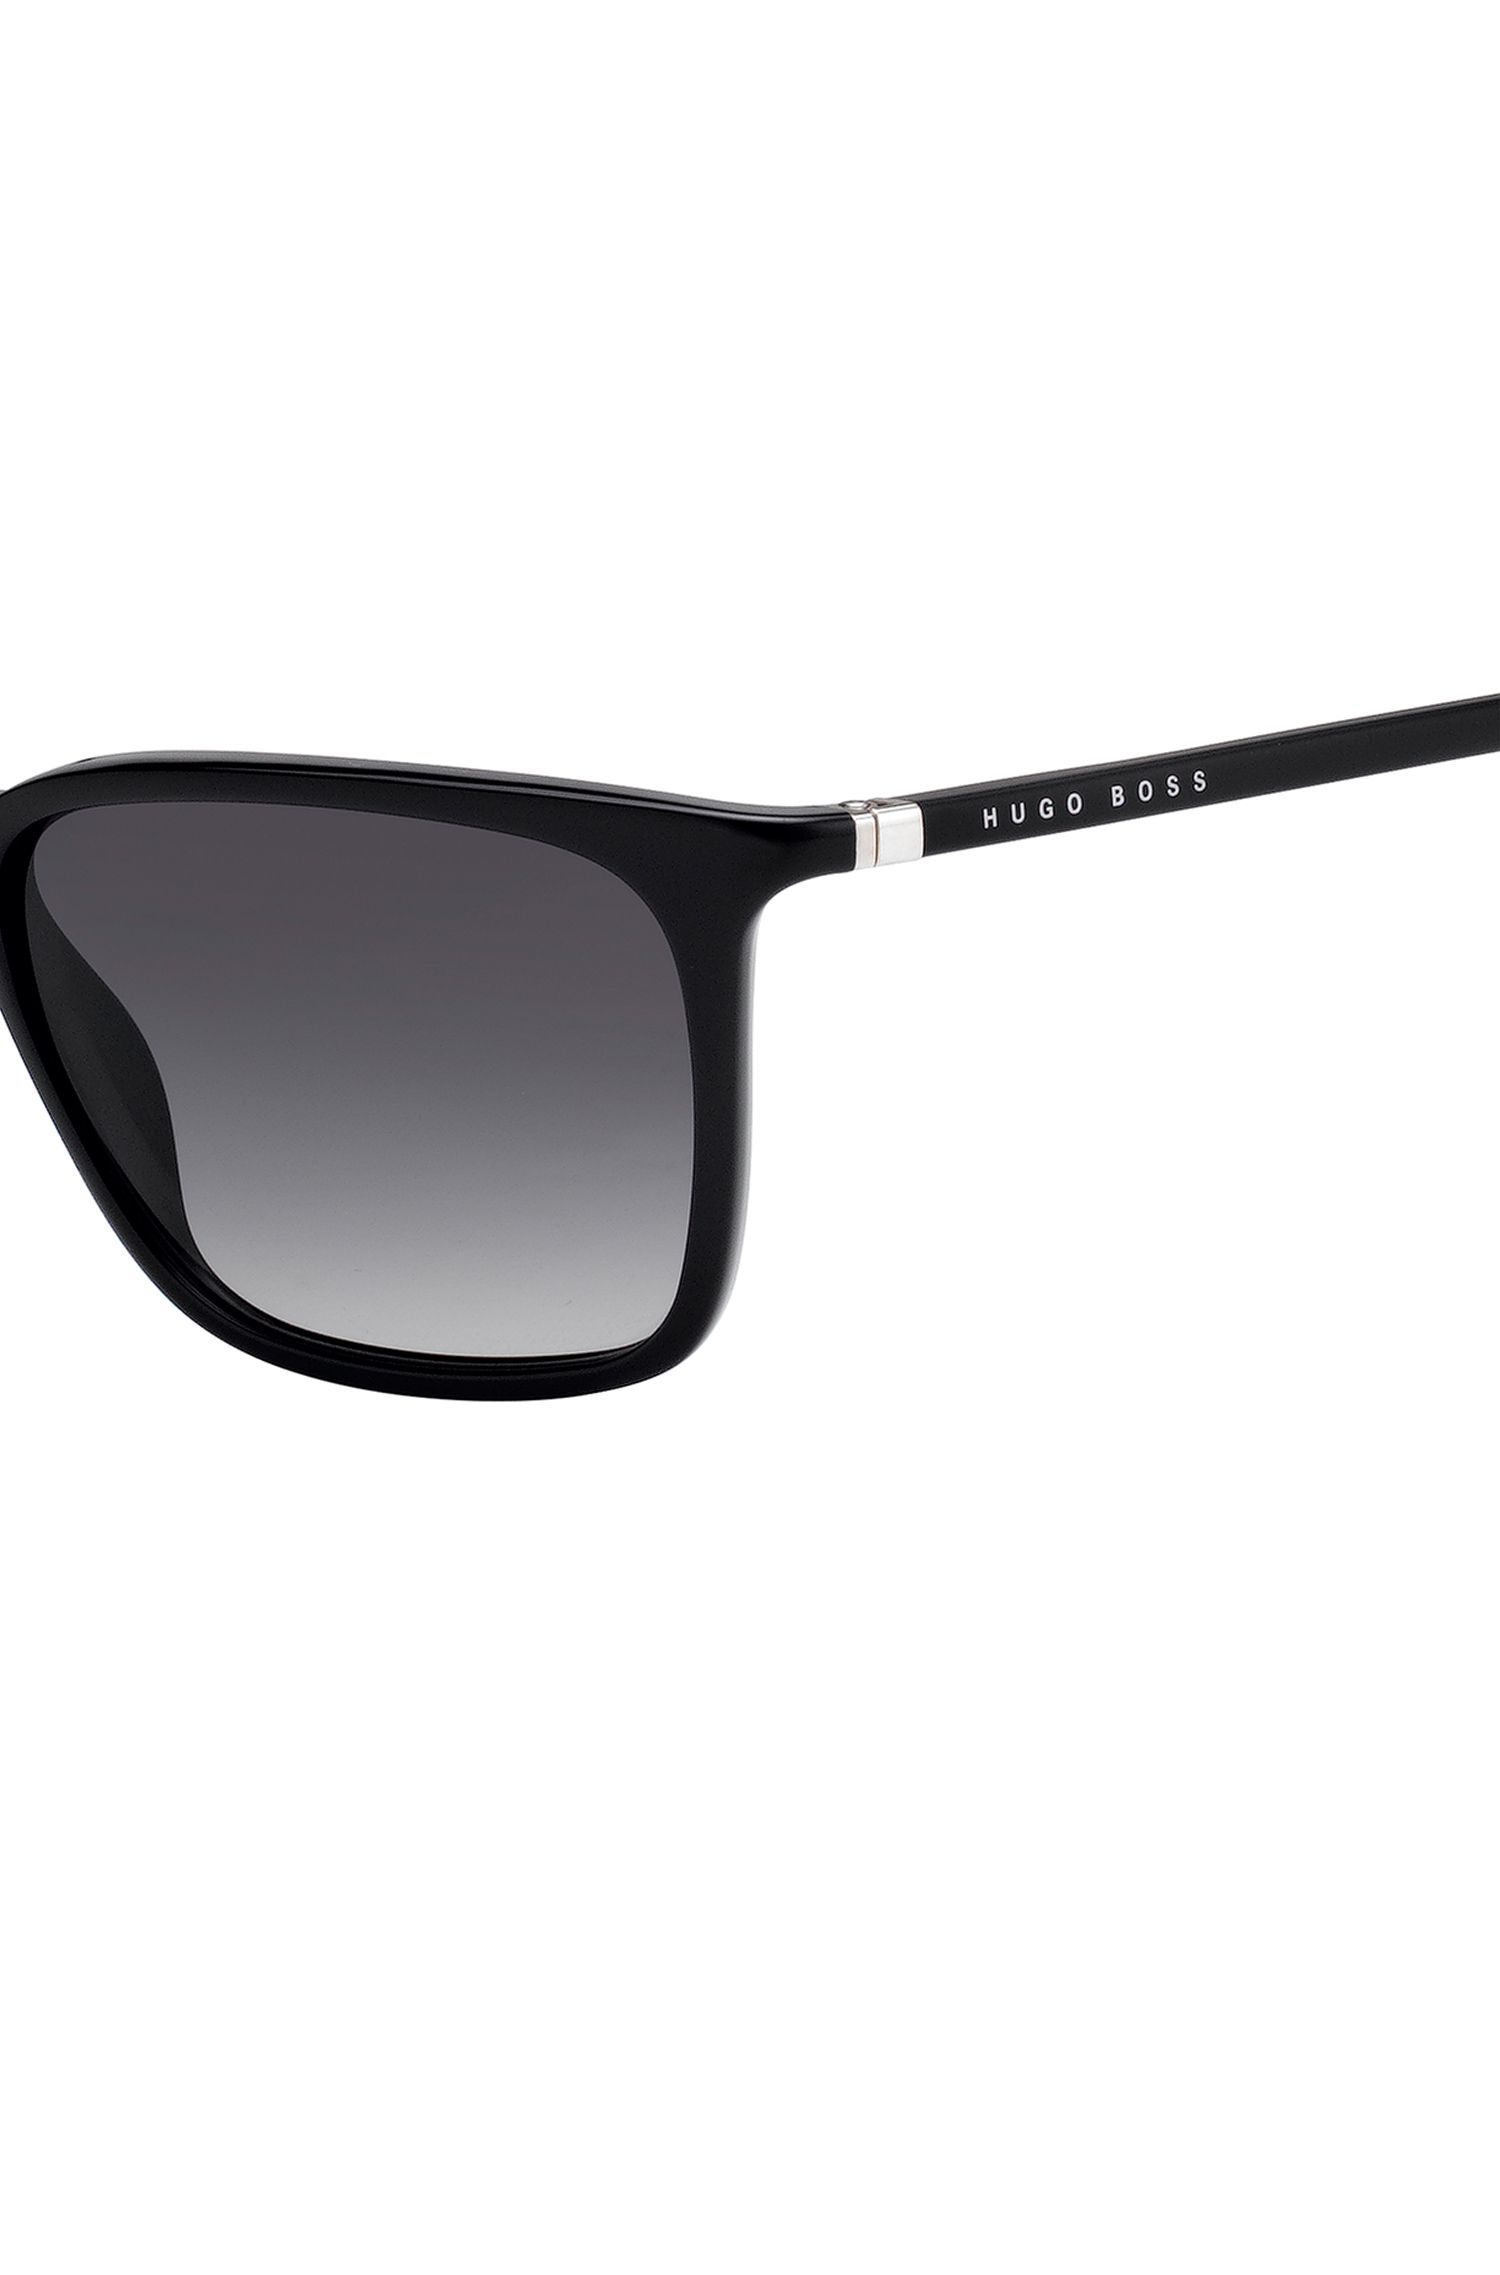 Black optyl sunglasses with integrated flexible hinges